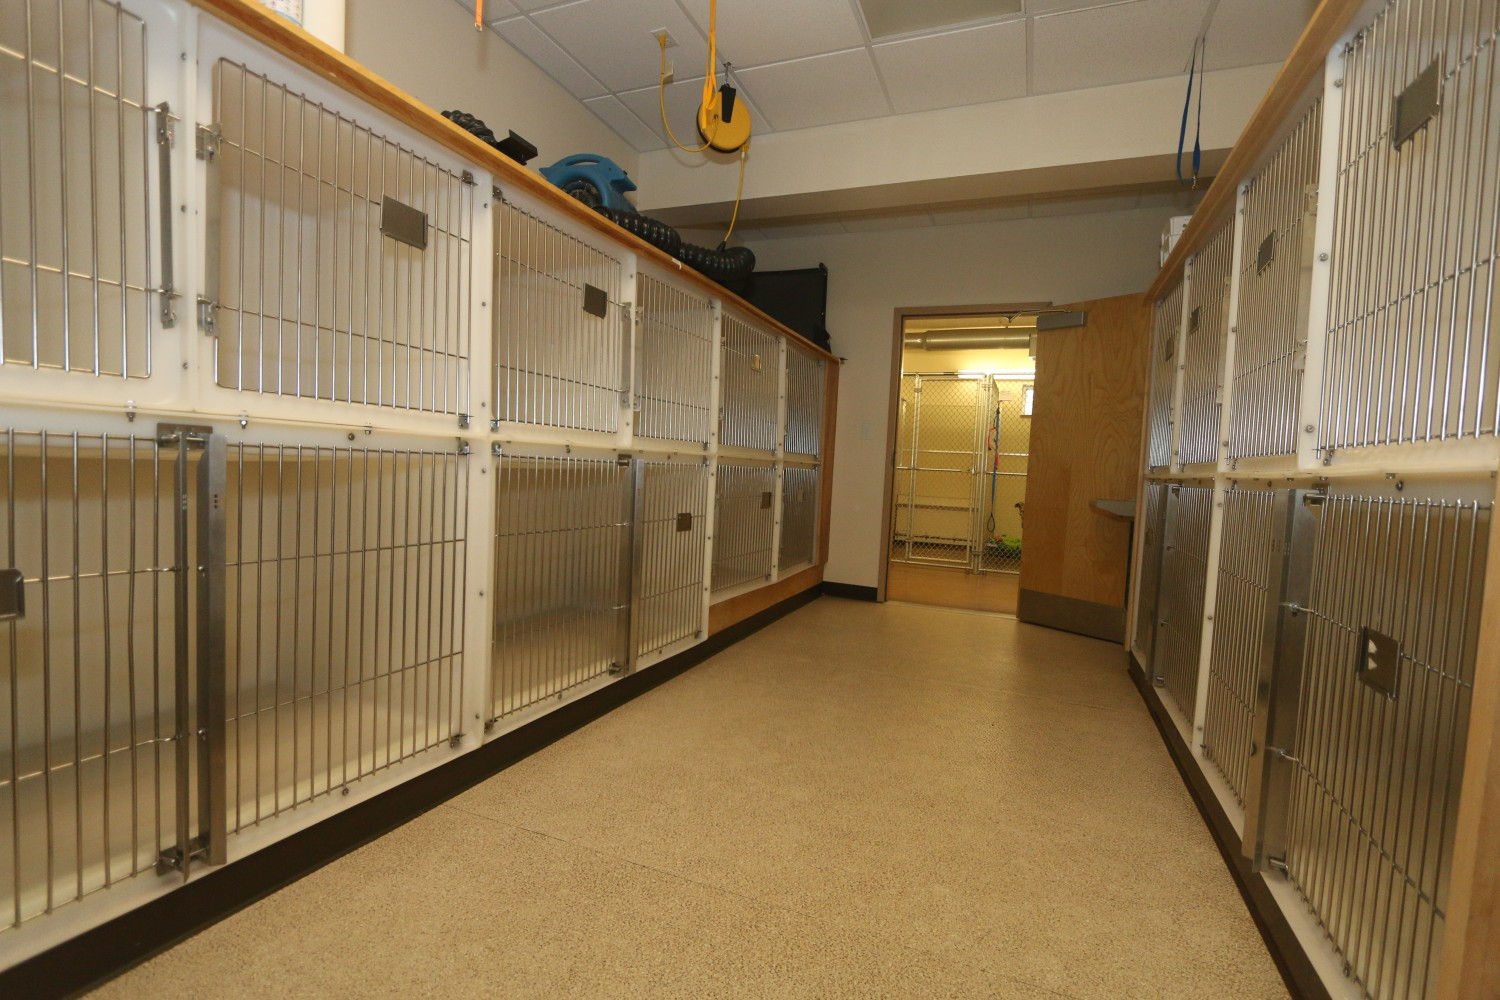 Litchfield Veterinary Hospital - Litchfield, CT - Small Dog Ward